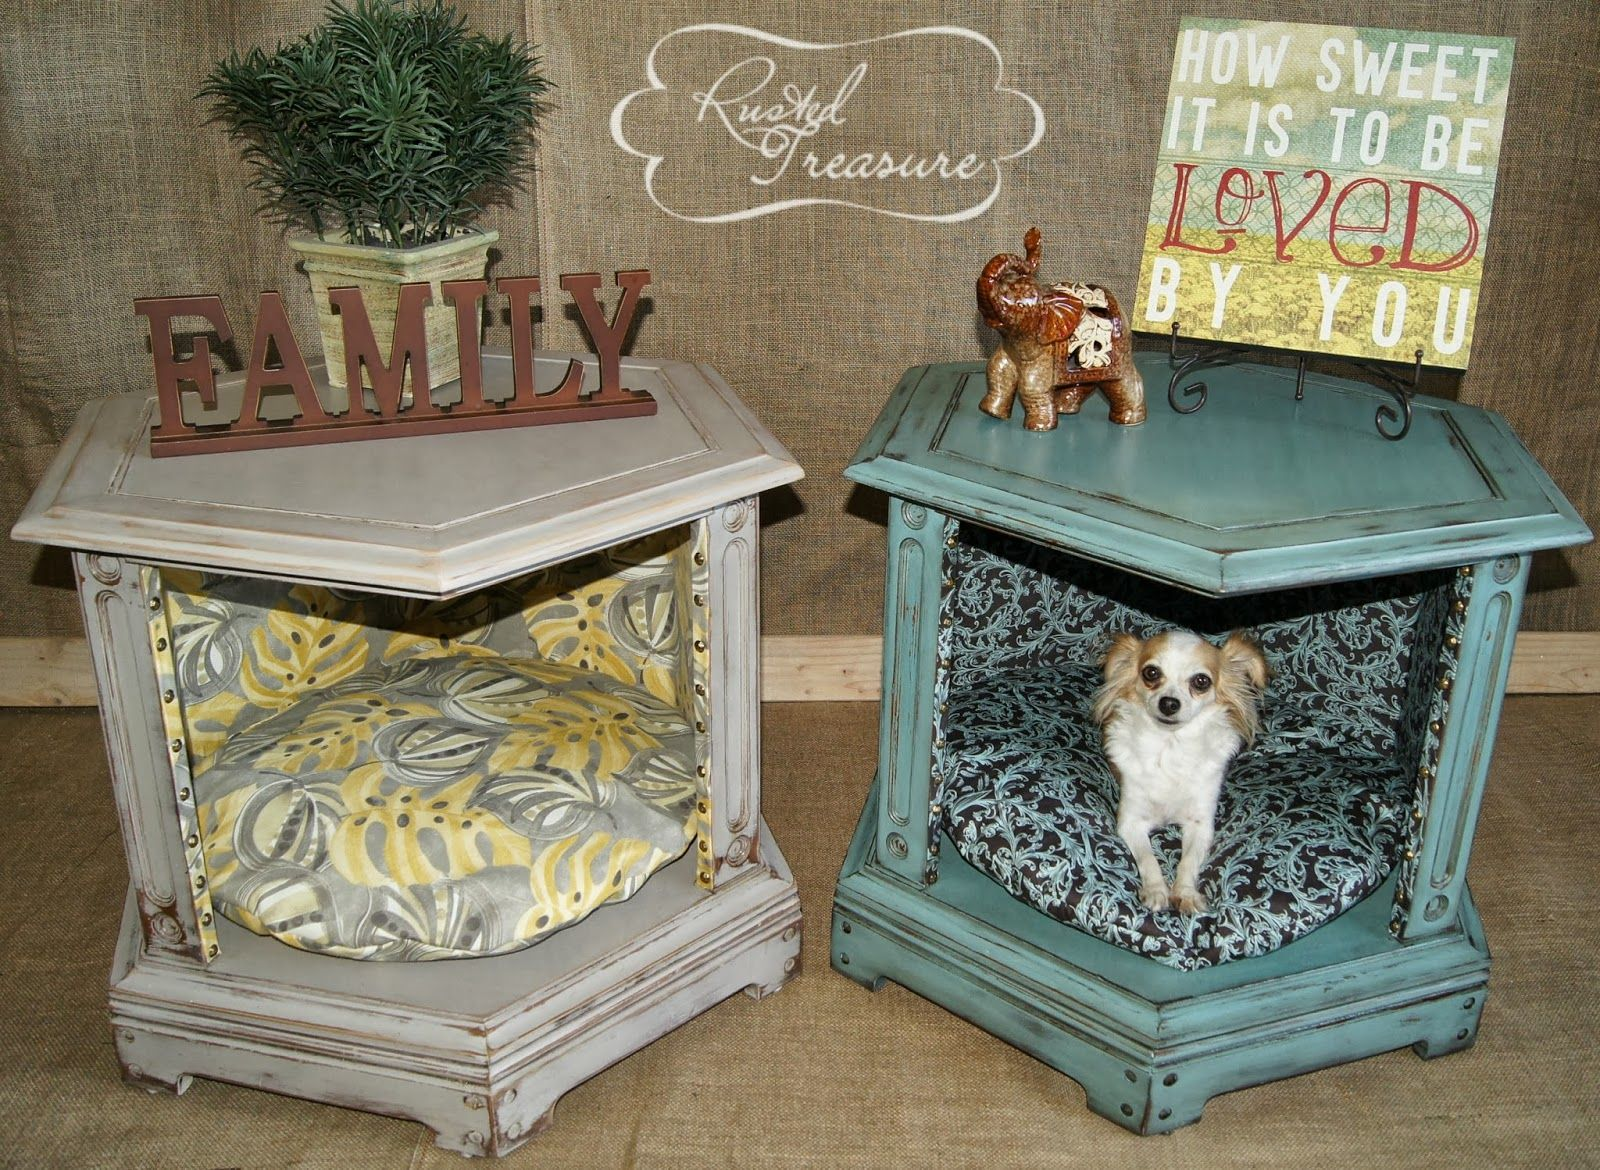 diy upcycled kids bed - Google Search